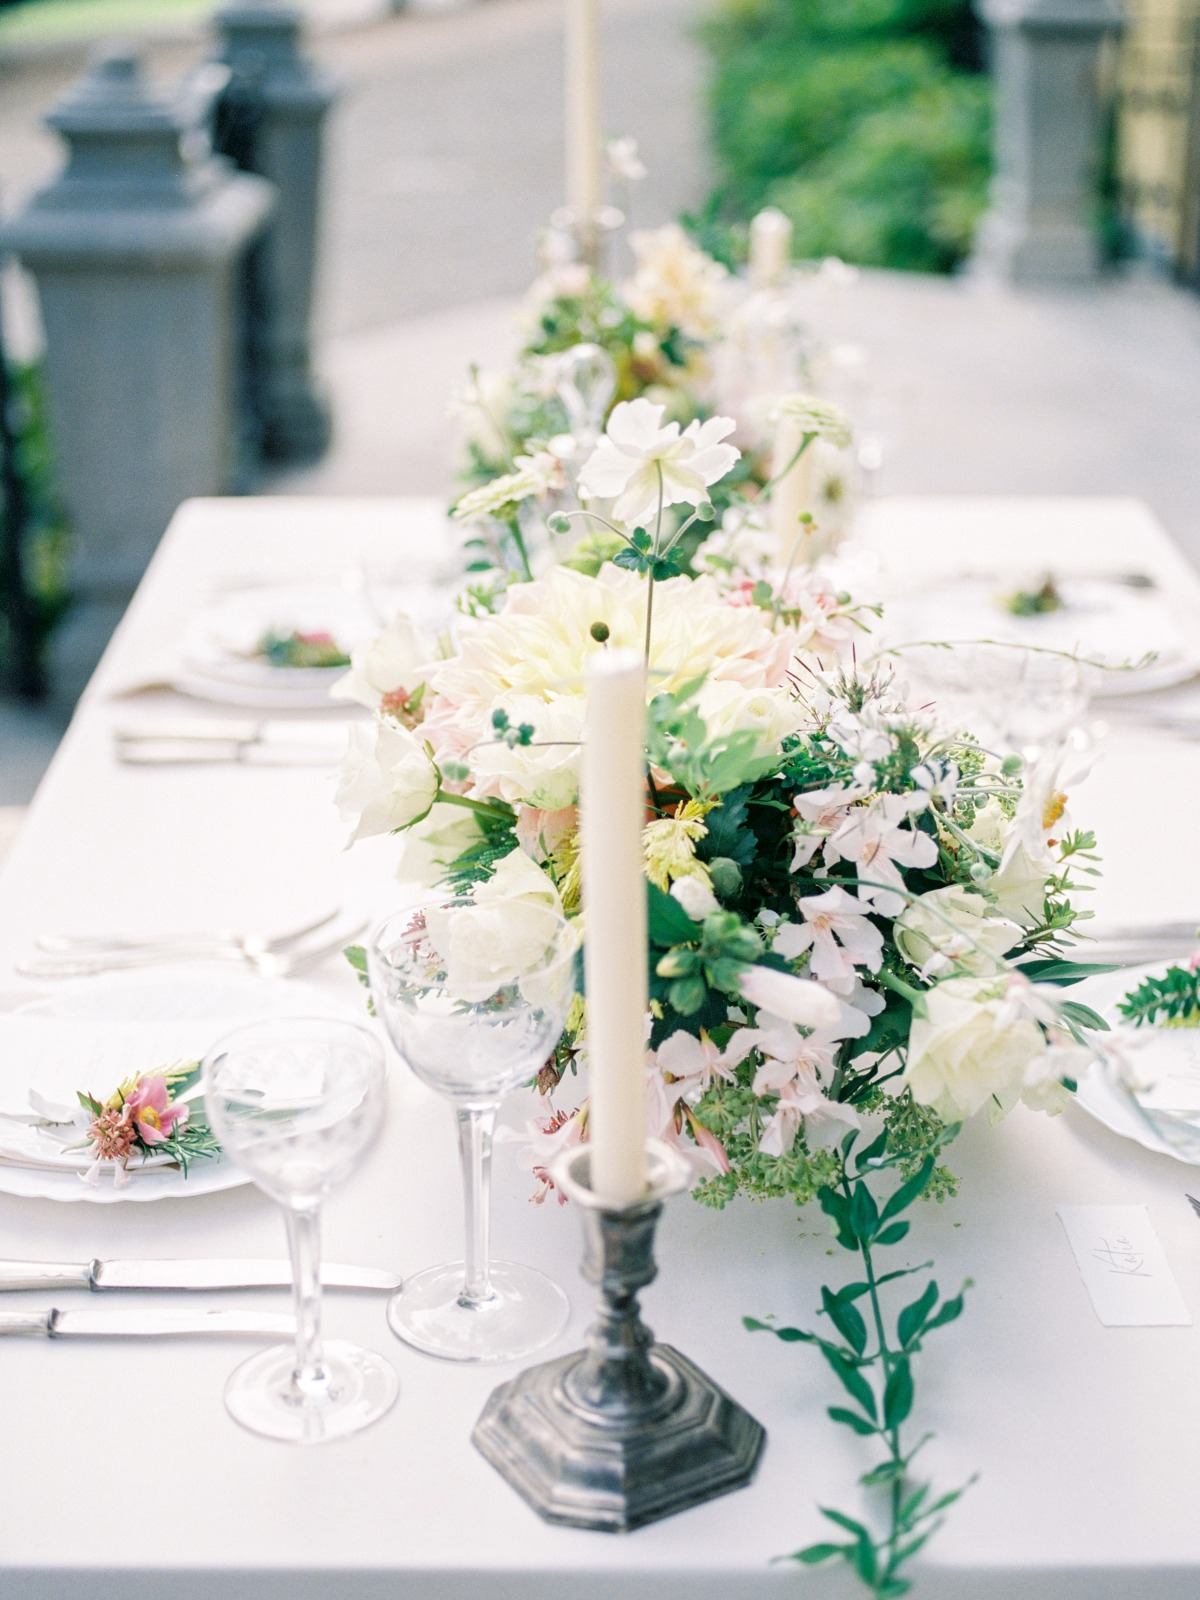 luxury wedding table decor ideas